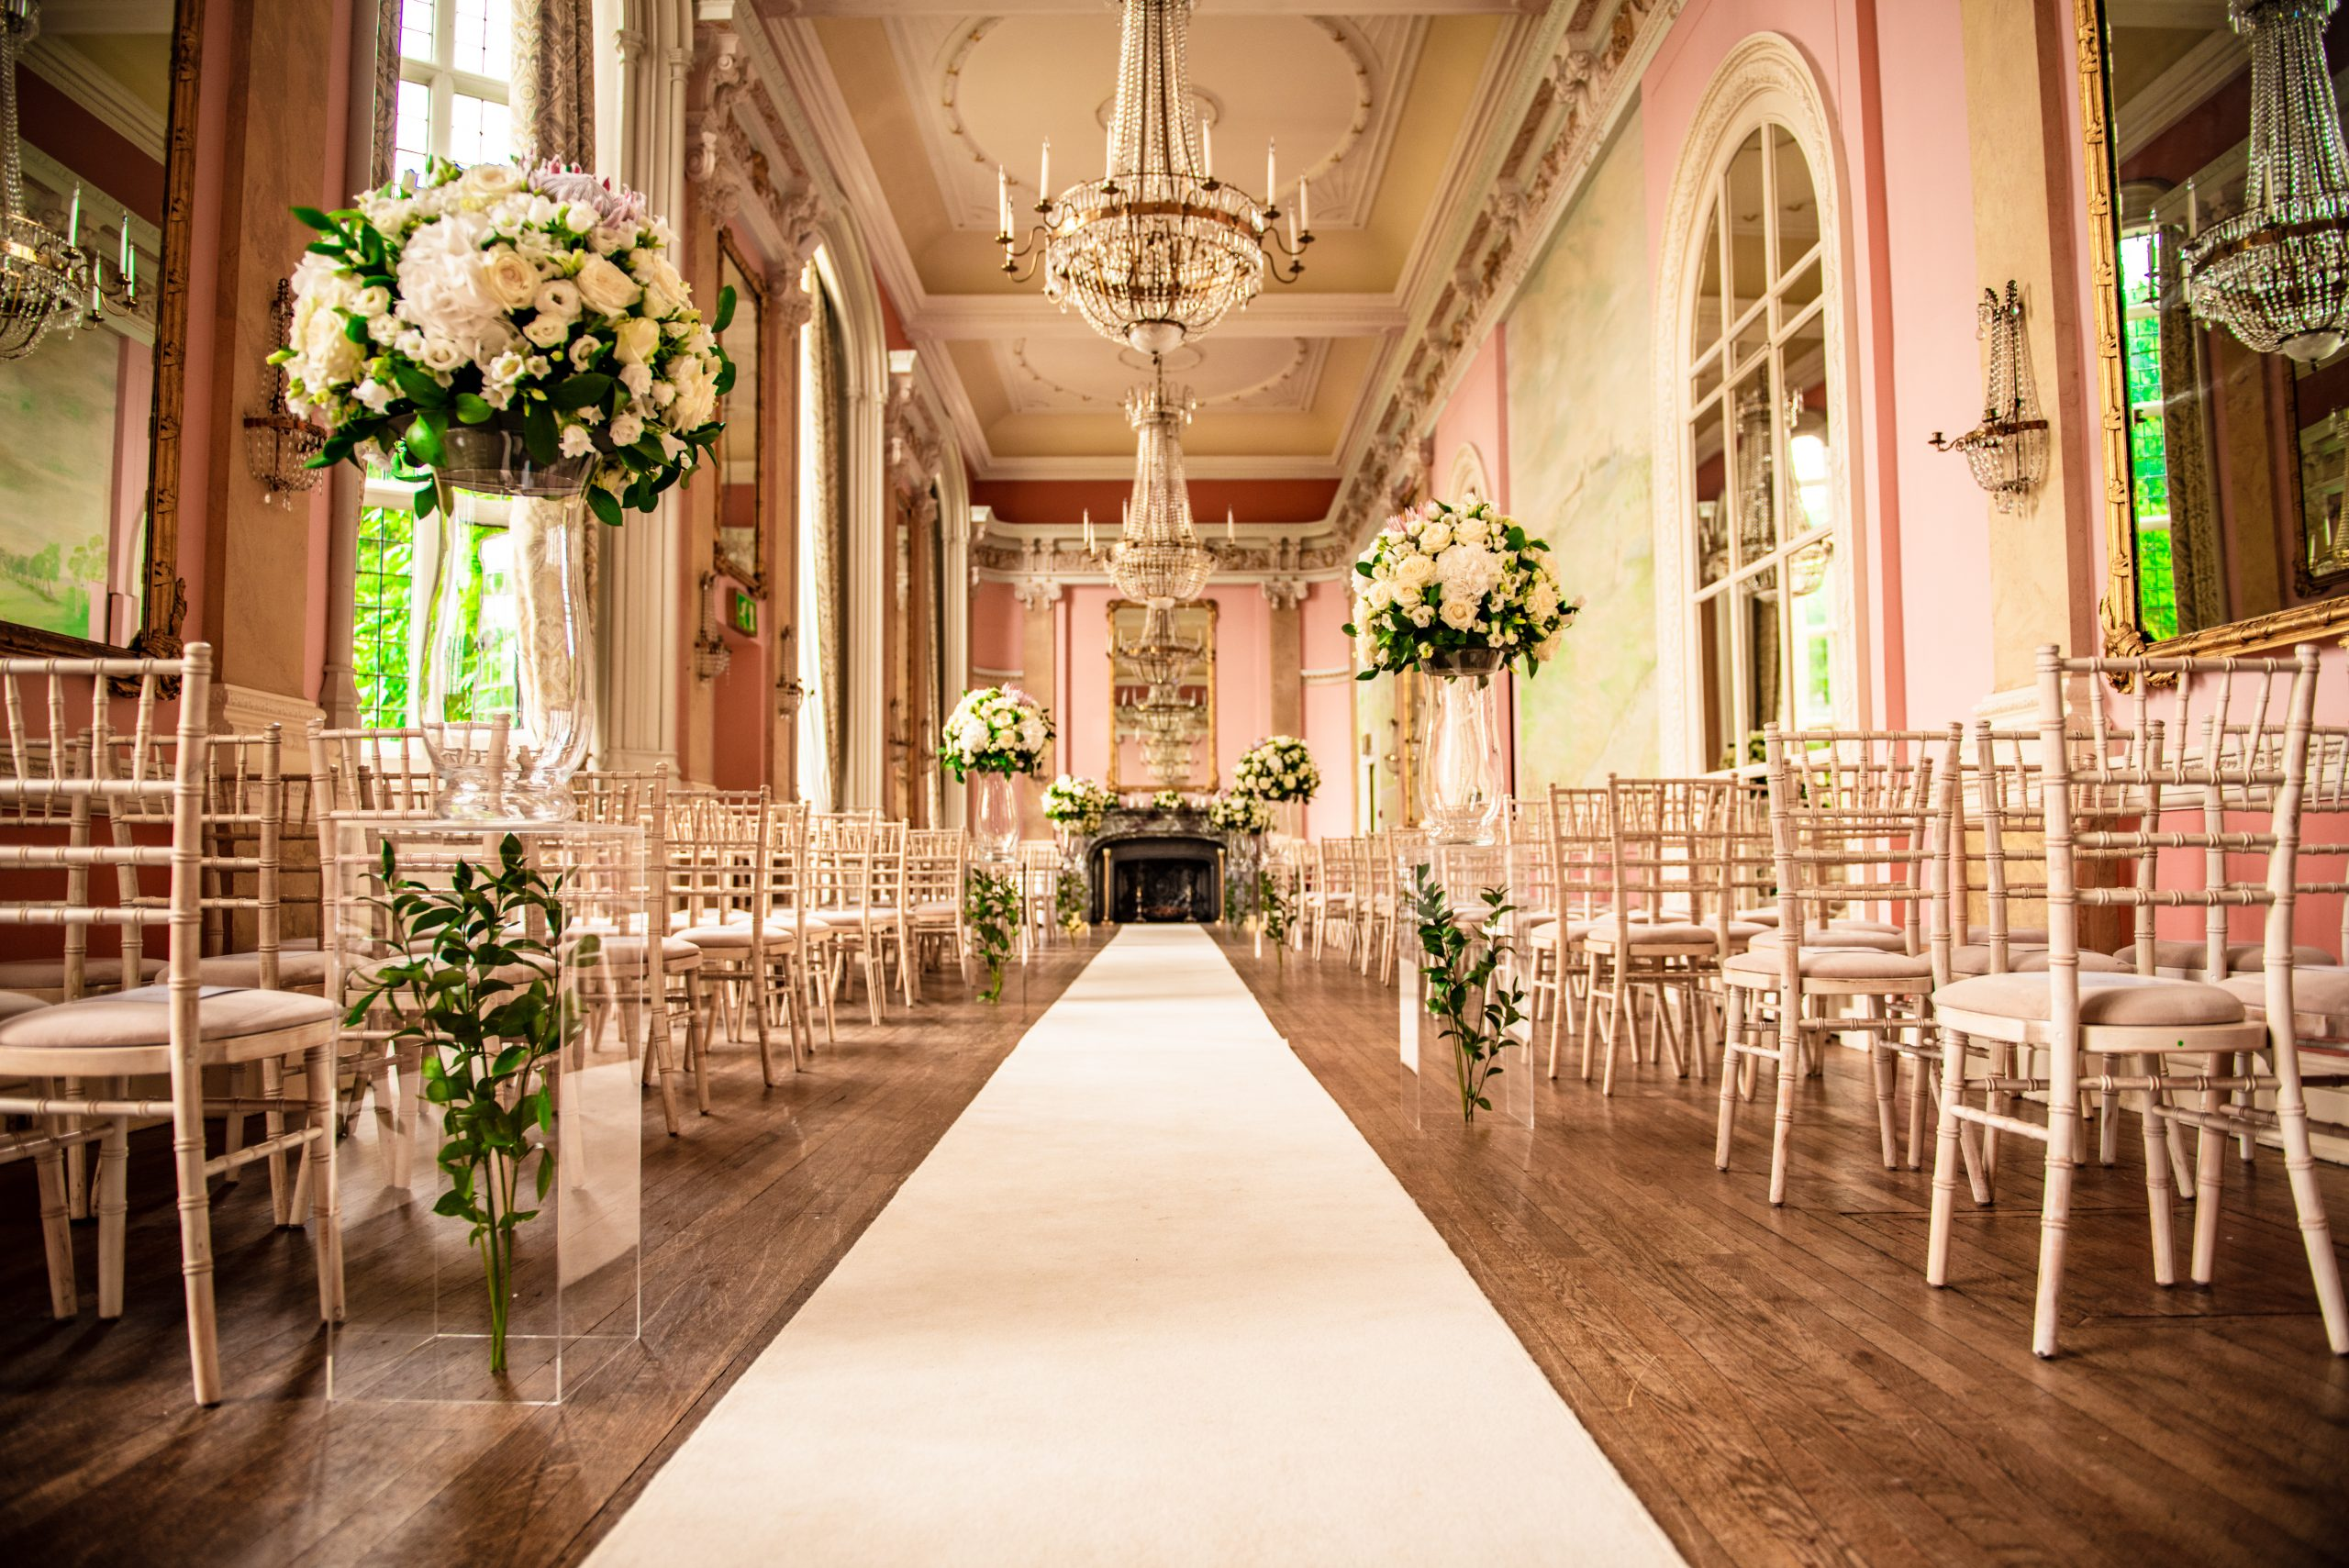 https://tietheknotwedding.co.uk/listings/hire-societies